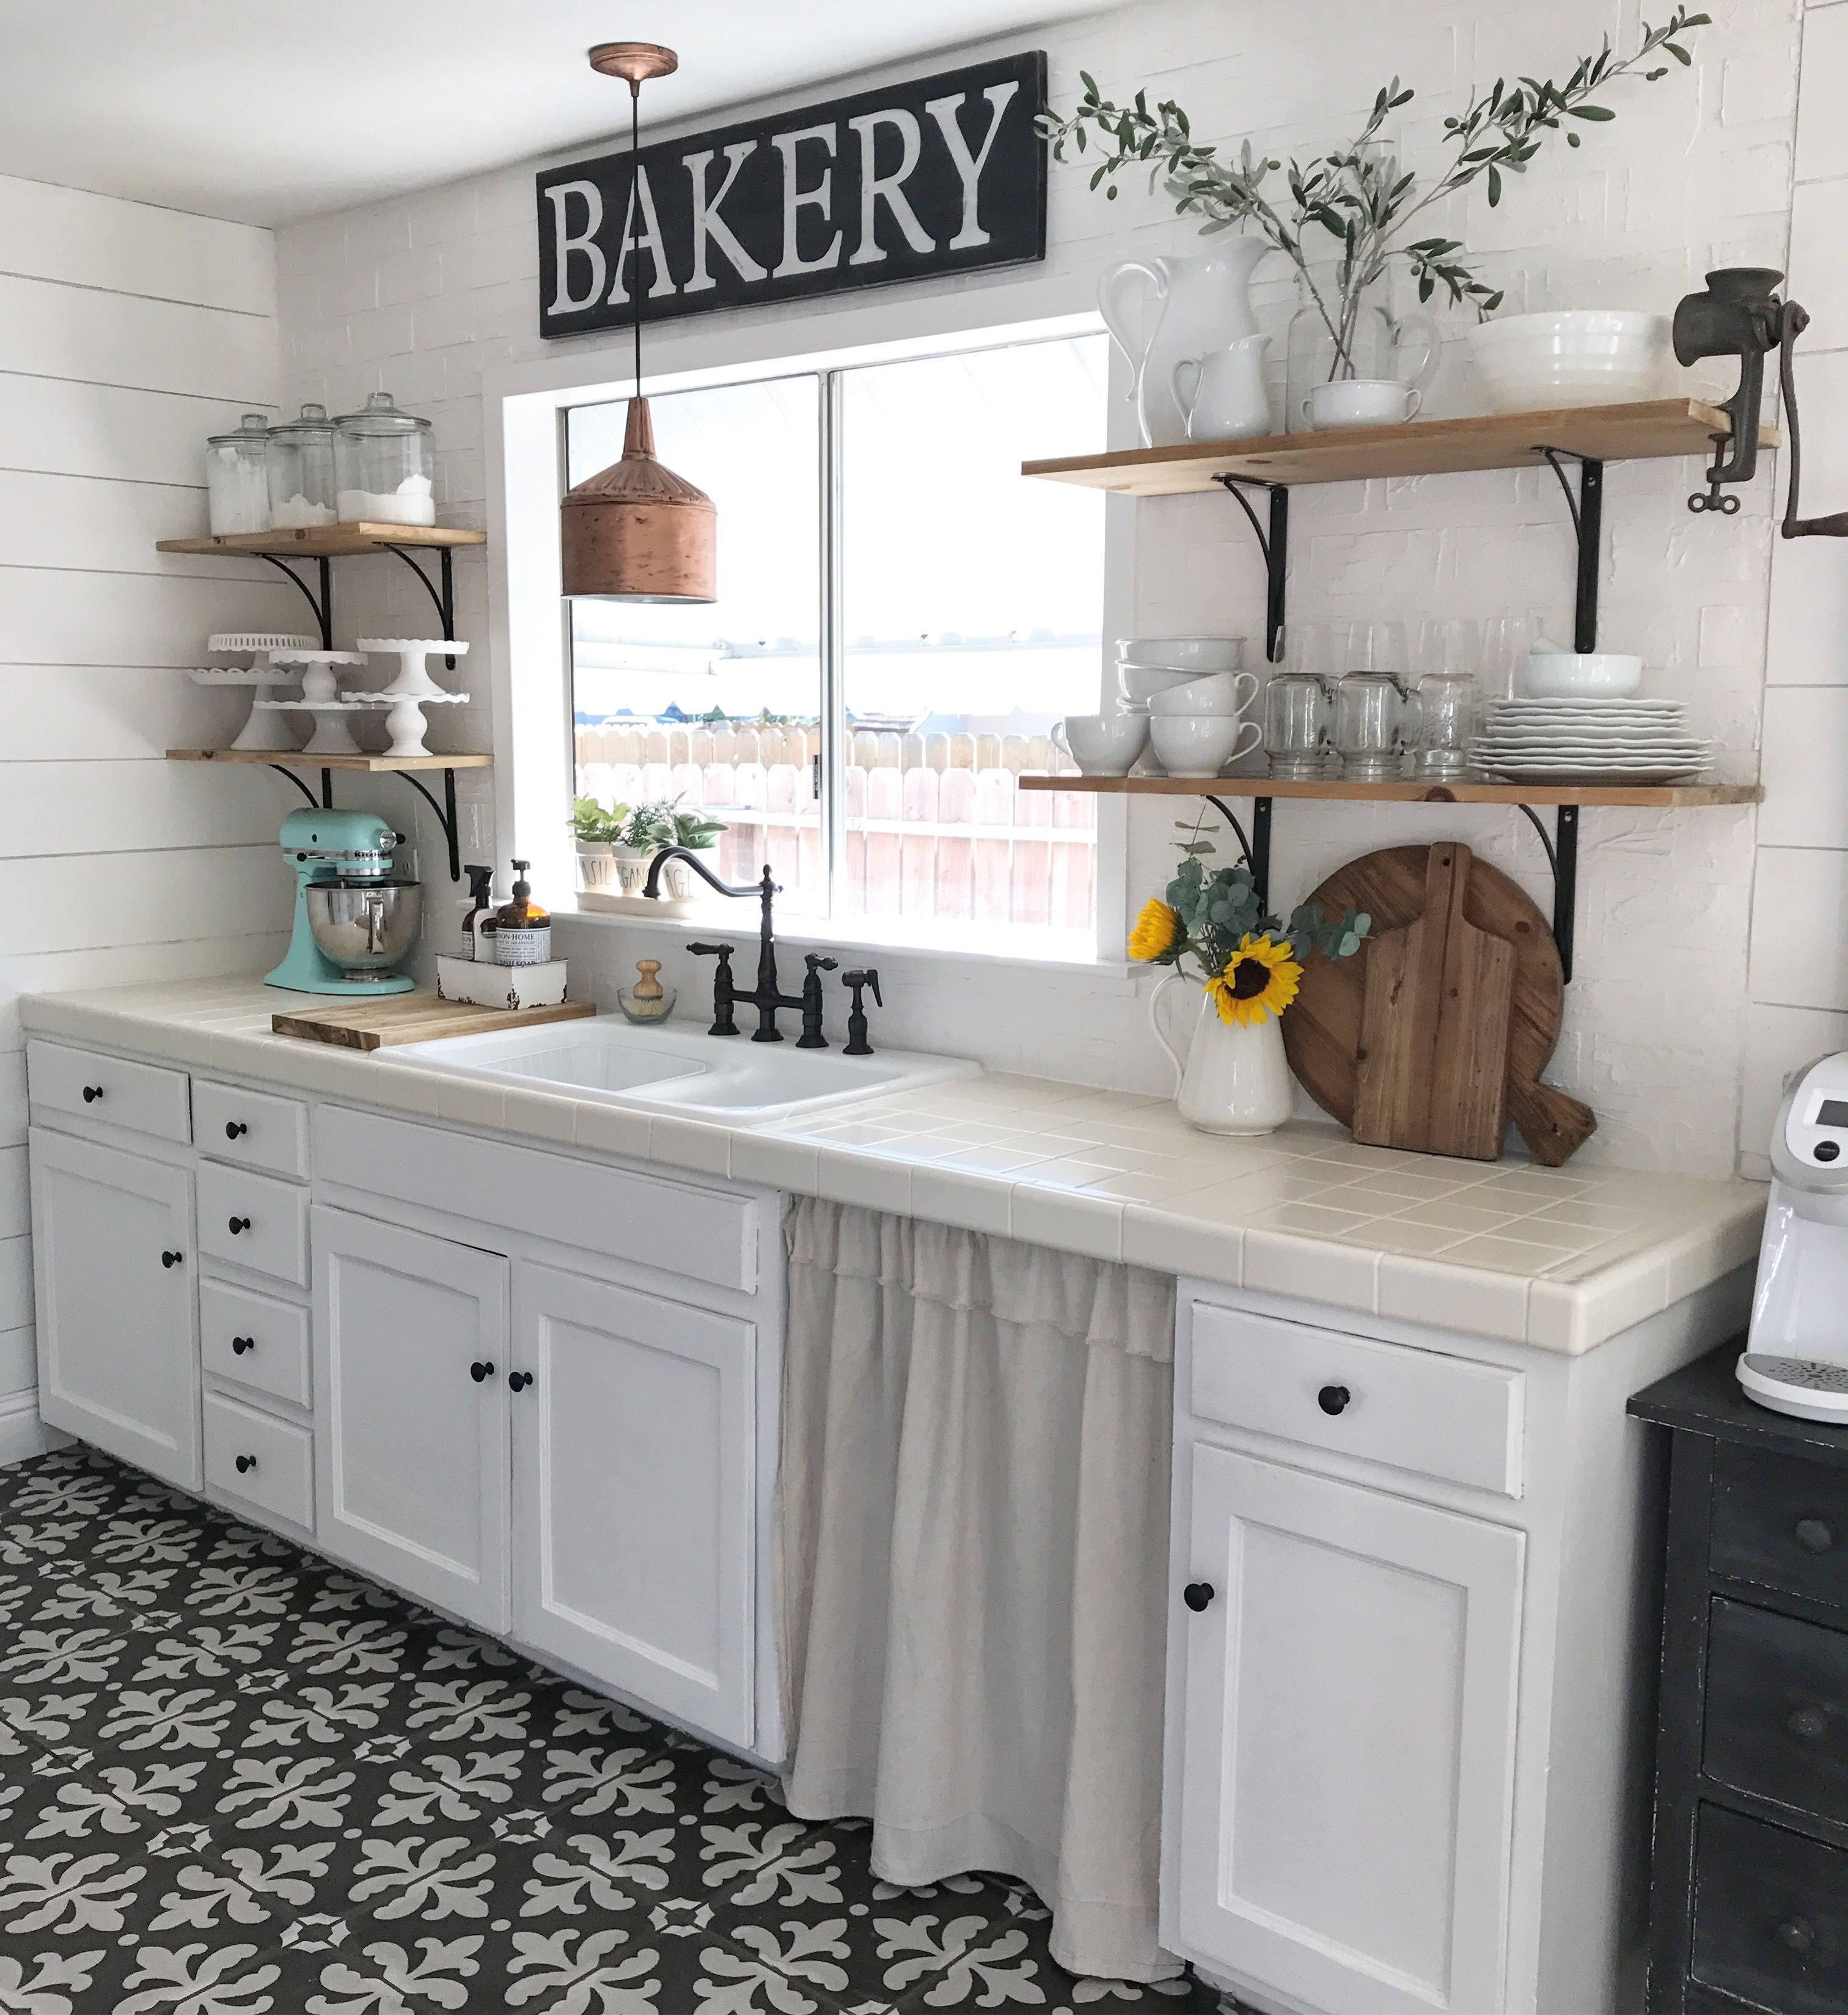 20 Small Galley Kitchen Ideas On A Budget Magzhouse